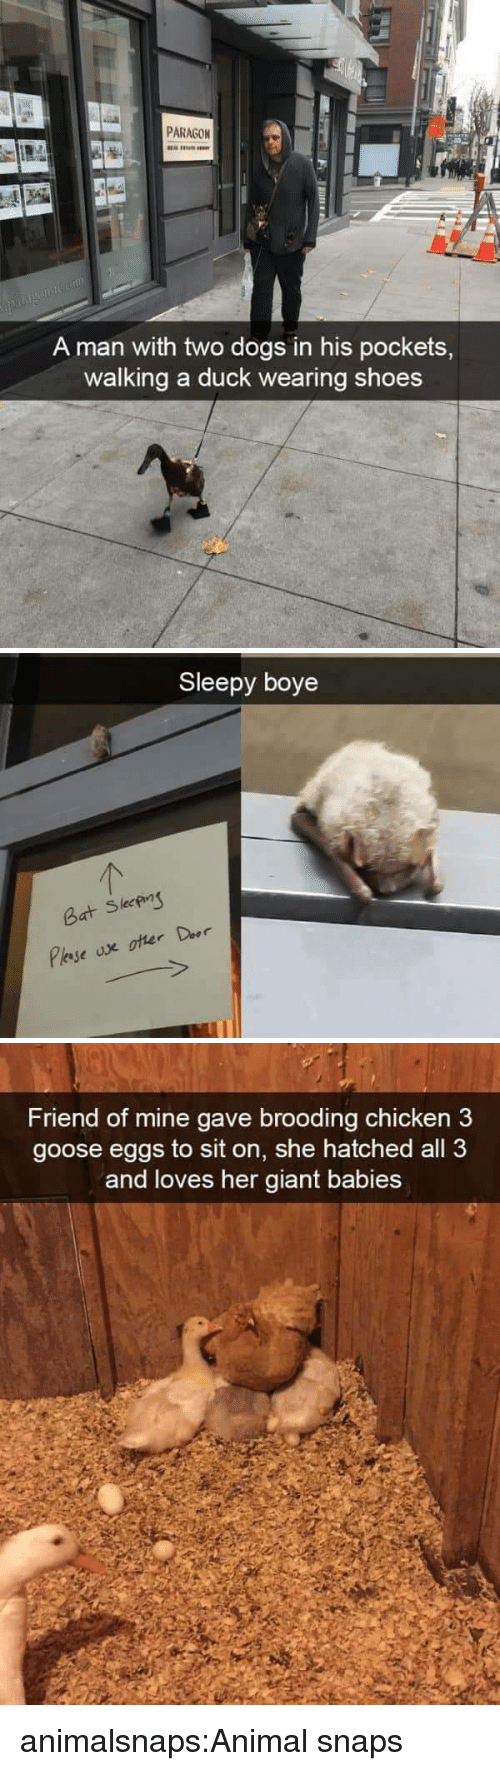 Dogs, Shoes, and Target: PARAGON  A man with two dogs in his pockets,  walking a duck wearing shoes   Sleepy boye  leeP  Bat S   Friend of mine gave brooding chicken3  goose eggs to sit on, she hatched all 3  and loves her giant babies animalsnaps:Animal snaps